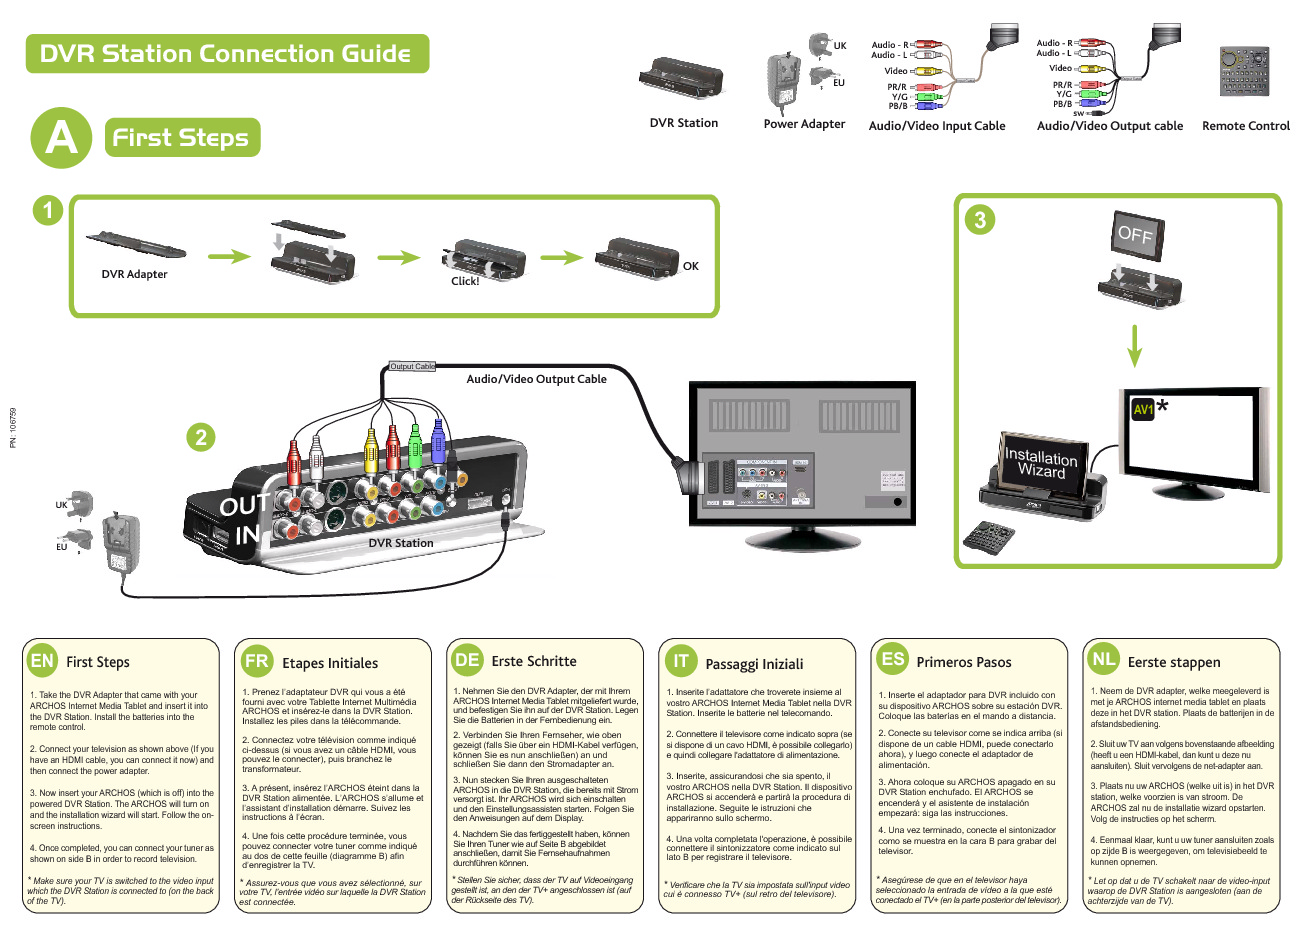 http://www.archos.com/support/download/manuals/connection_guide_euro_dvr_station_imt_v1.pdf